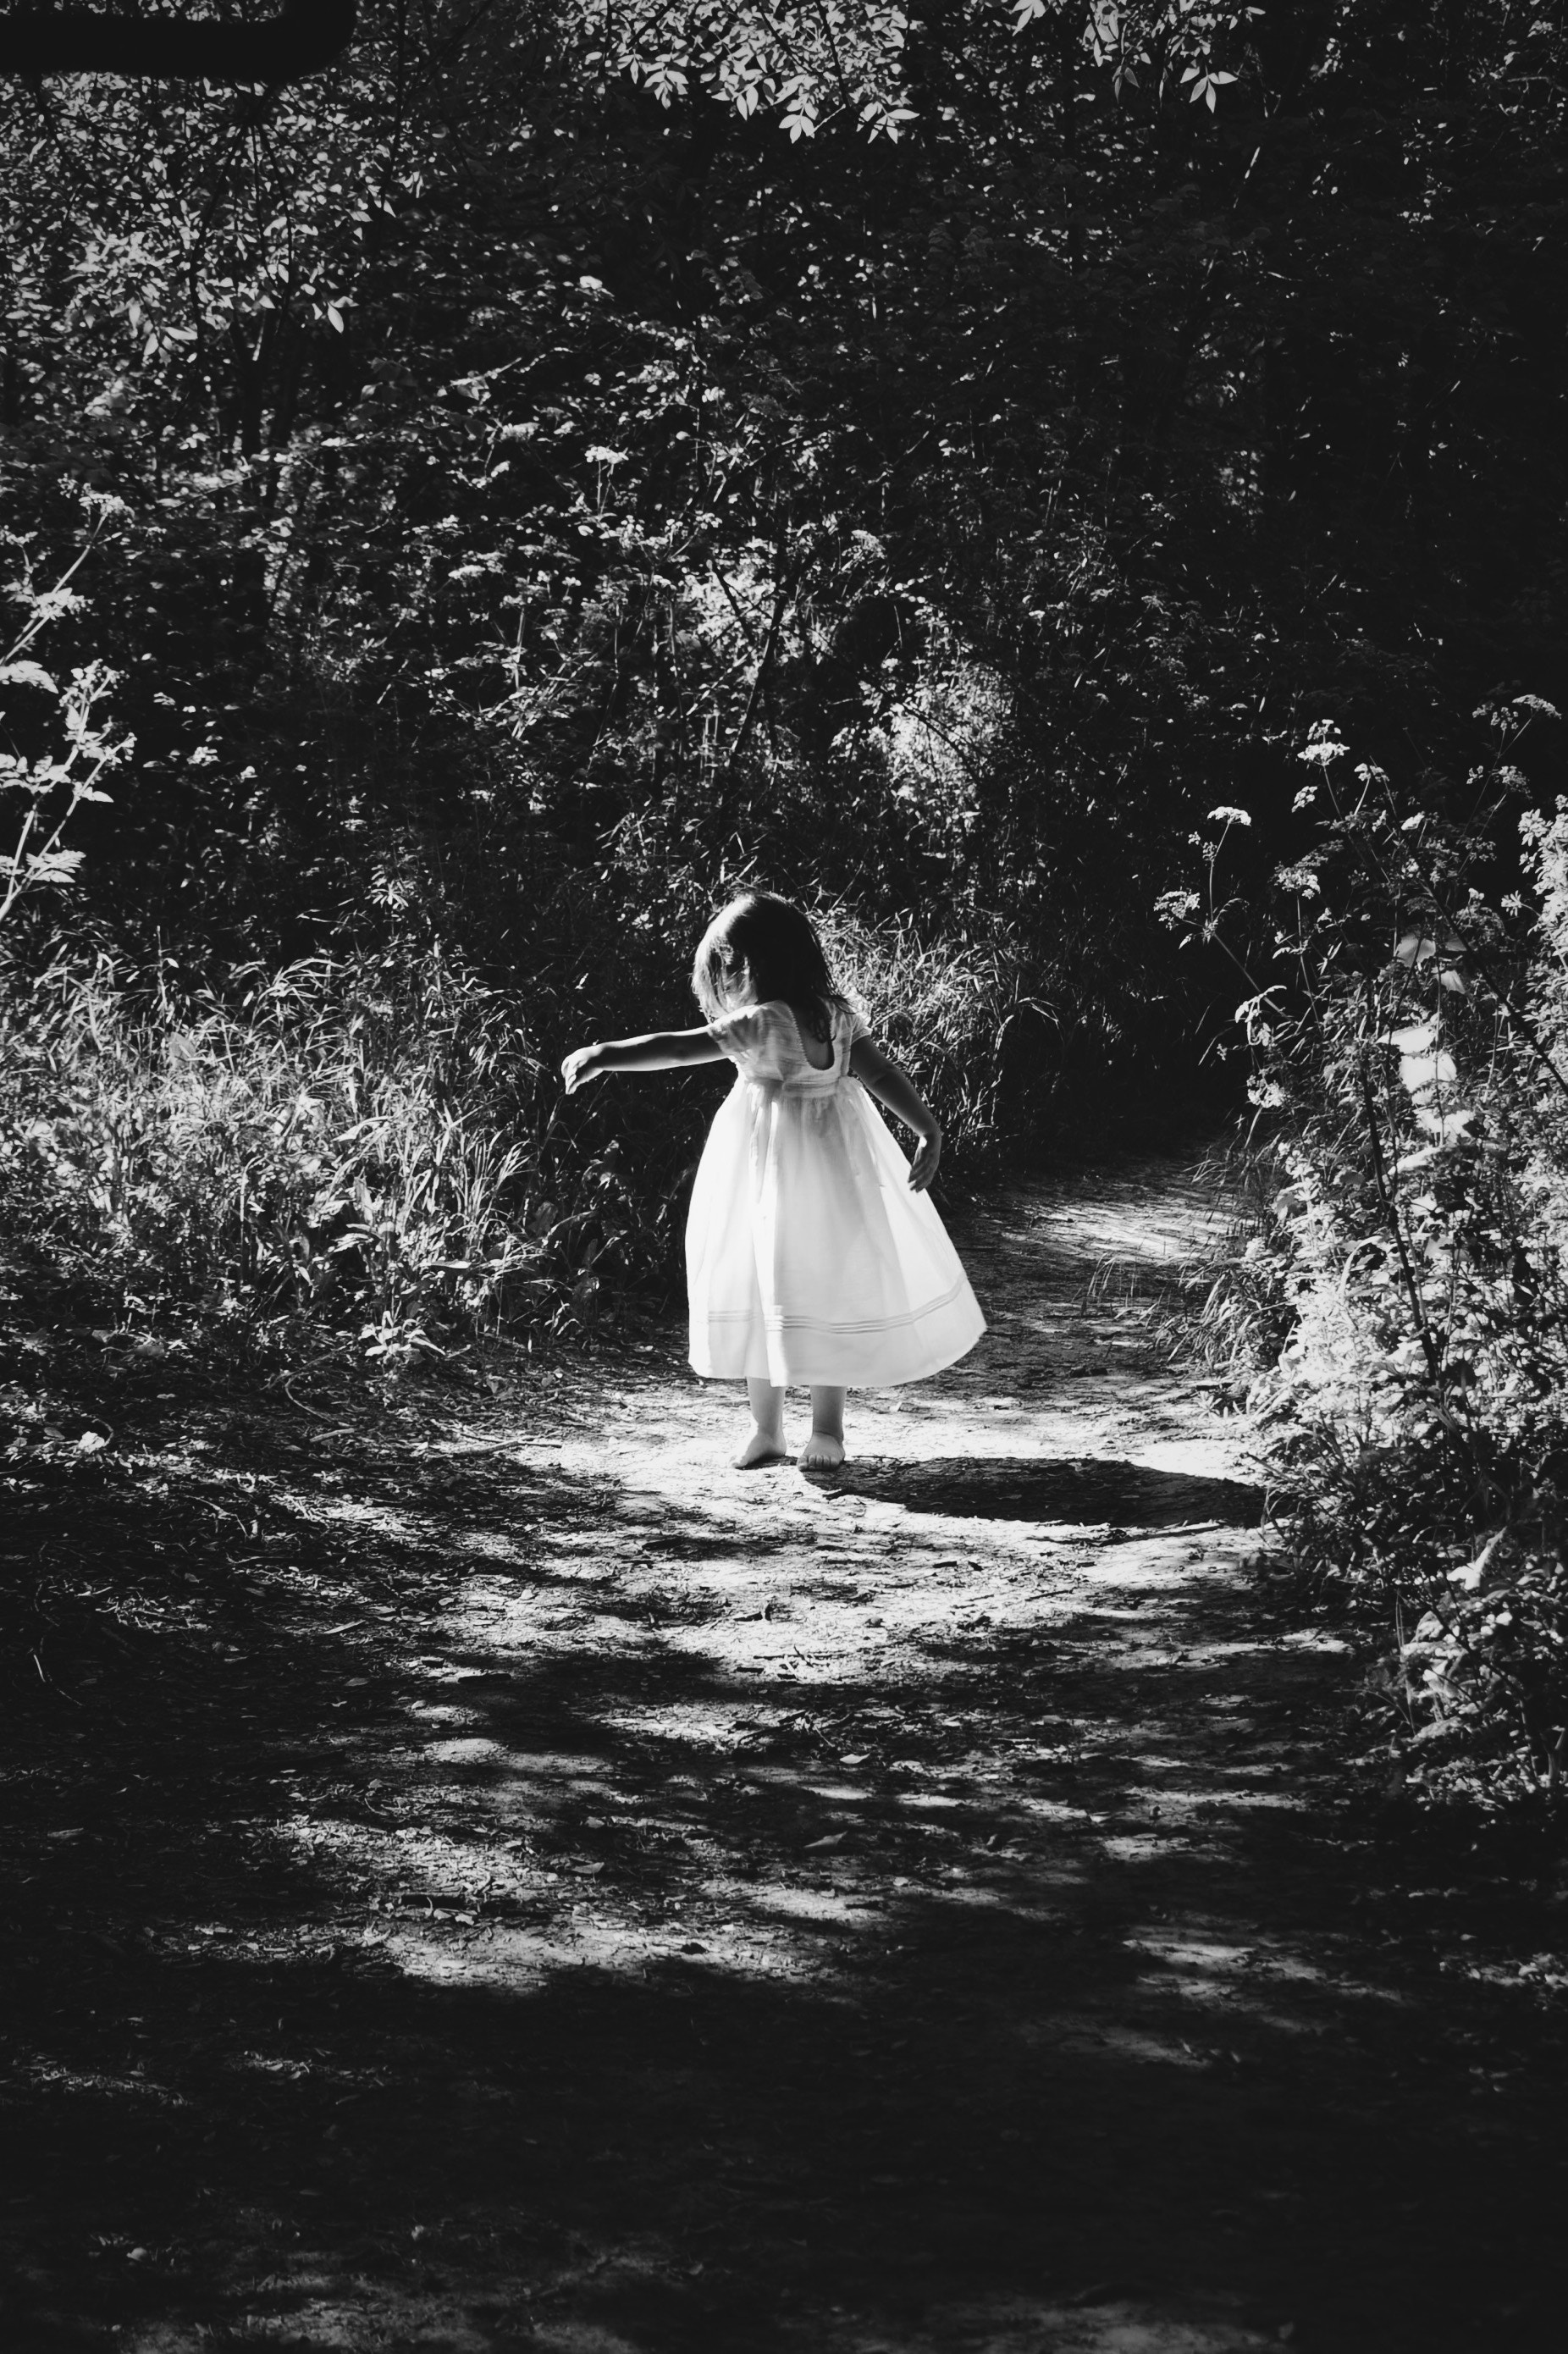 123145 download wallpaper Miscellanea, Miscellaneous, Child, Girl, Stroll, Bw, Chb, Childhood screensavers and pictures for free